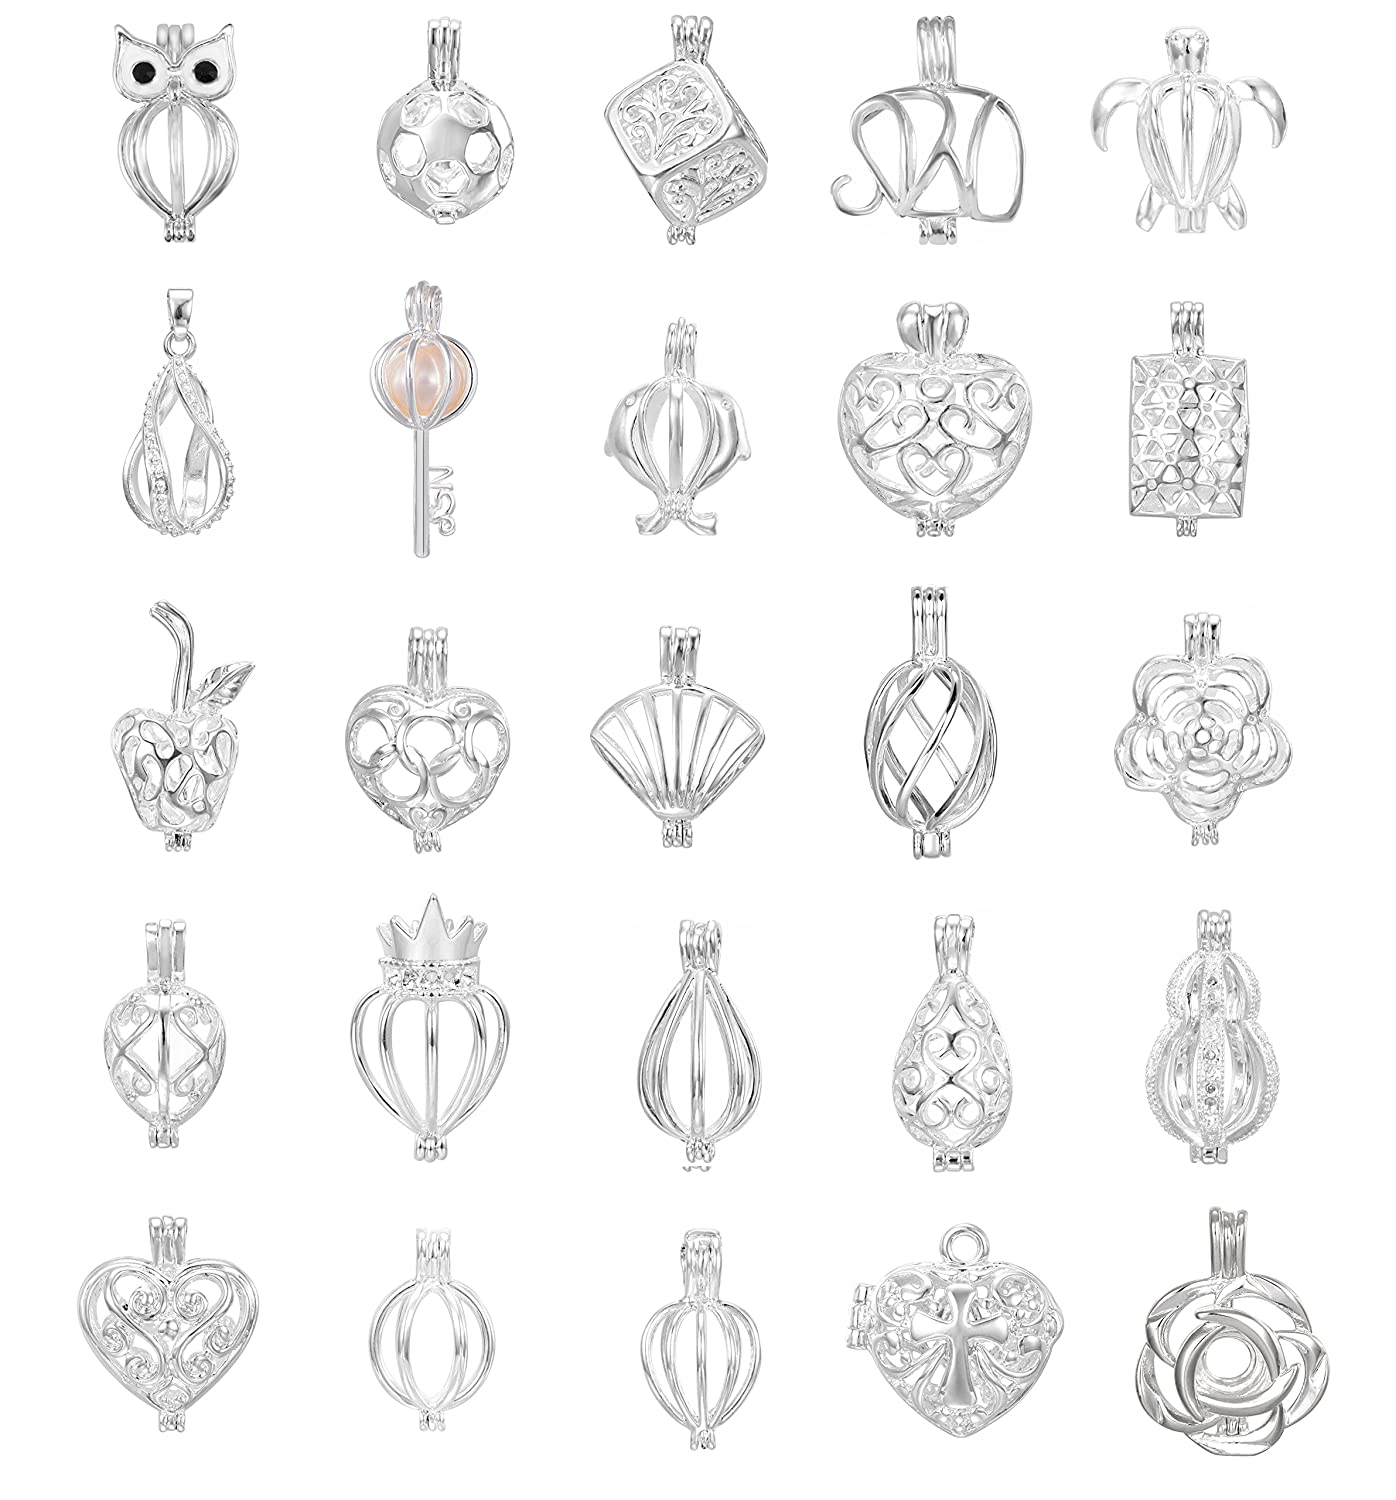 10pcs Mix Jewelry Making Supplies Silver Plated Bead Cage Pendant - Add Your Own Pearls, Stones, Rock to Cage,Add Perfume Essential Oils to Create a Scent Diffusing Pendant Charms YCLoket